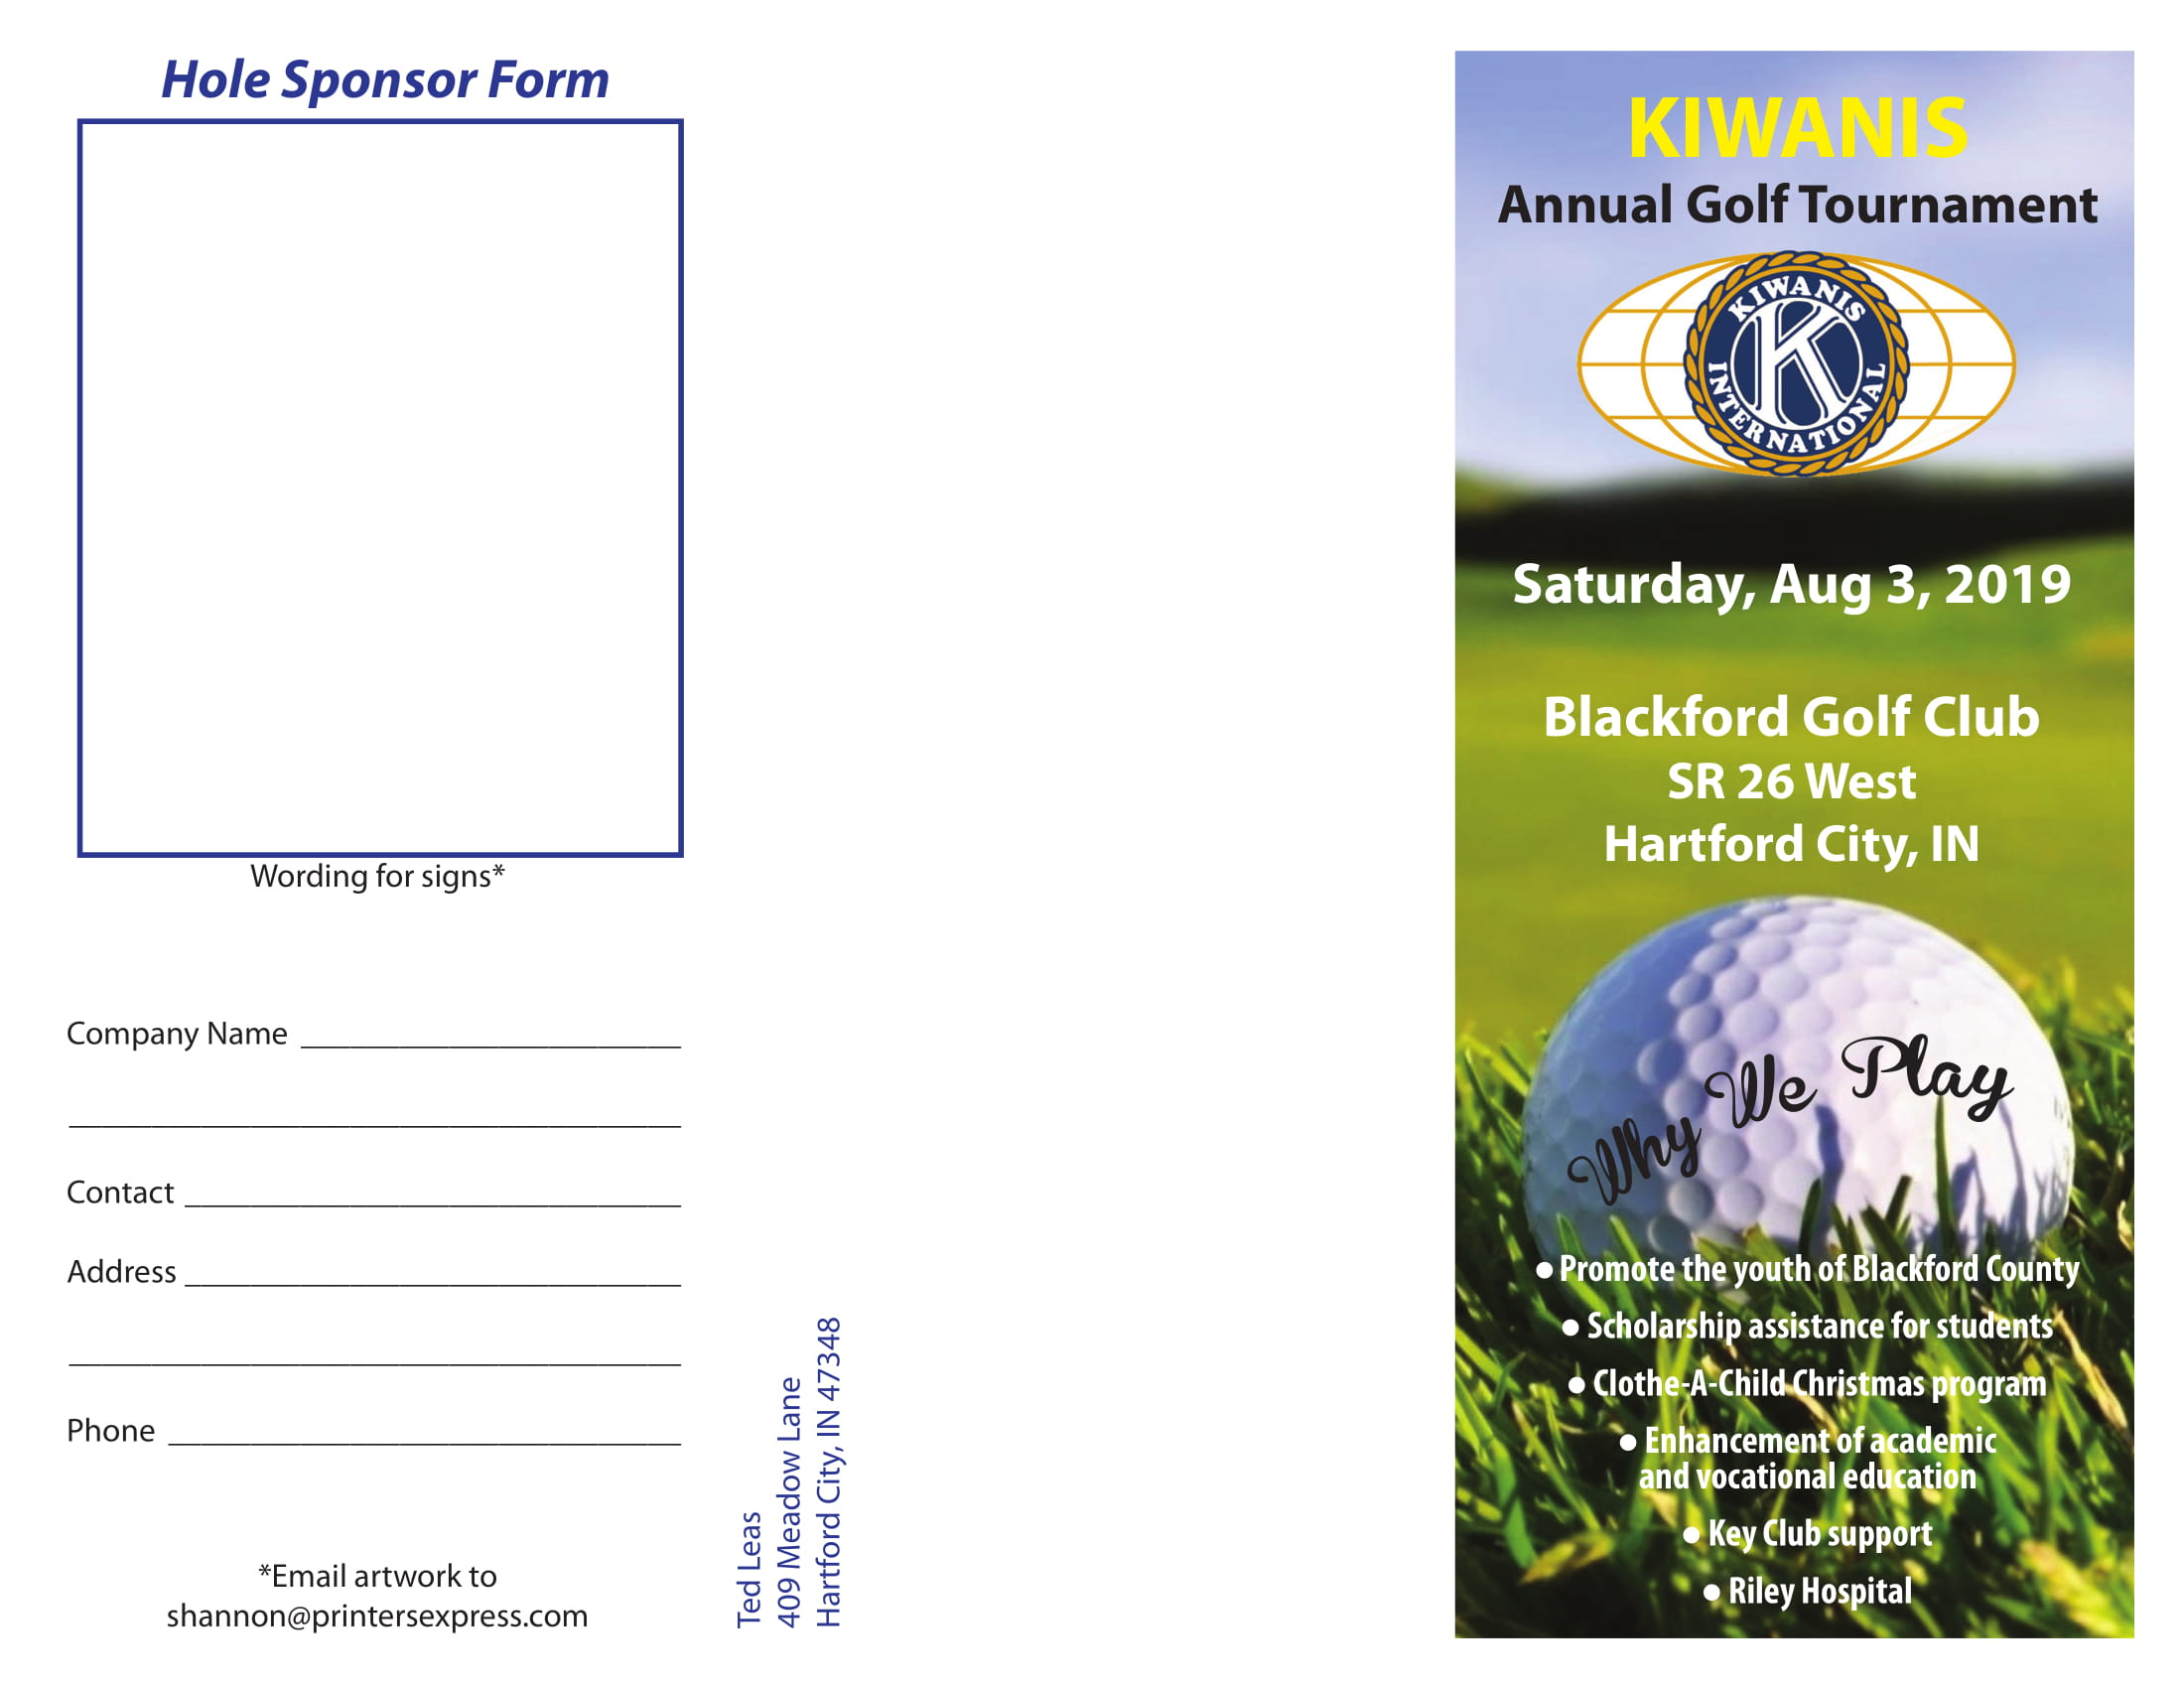 kiwanis golf brochure 2019-1.jpg